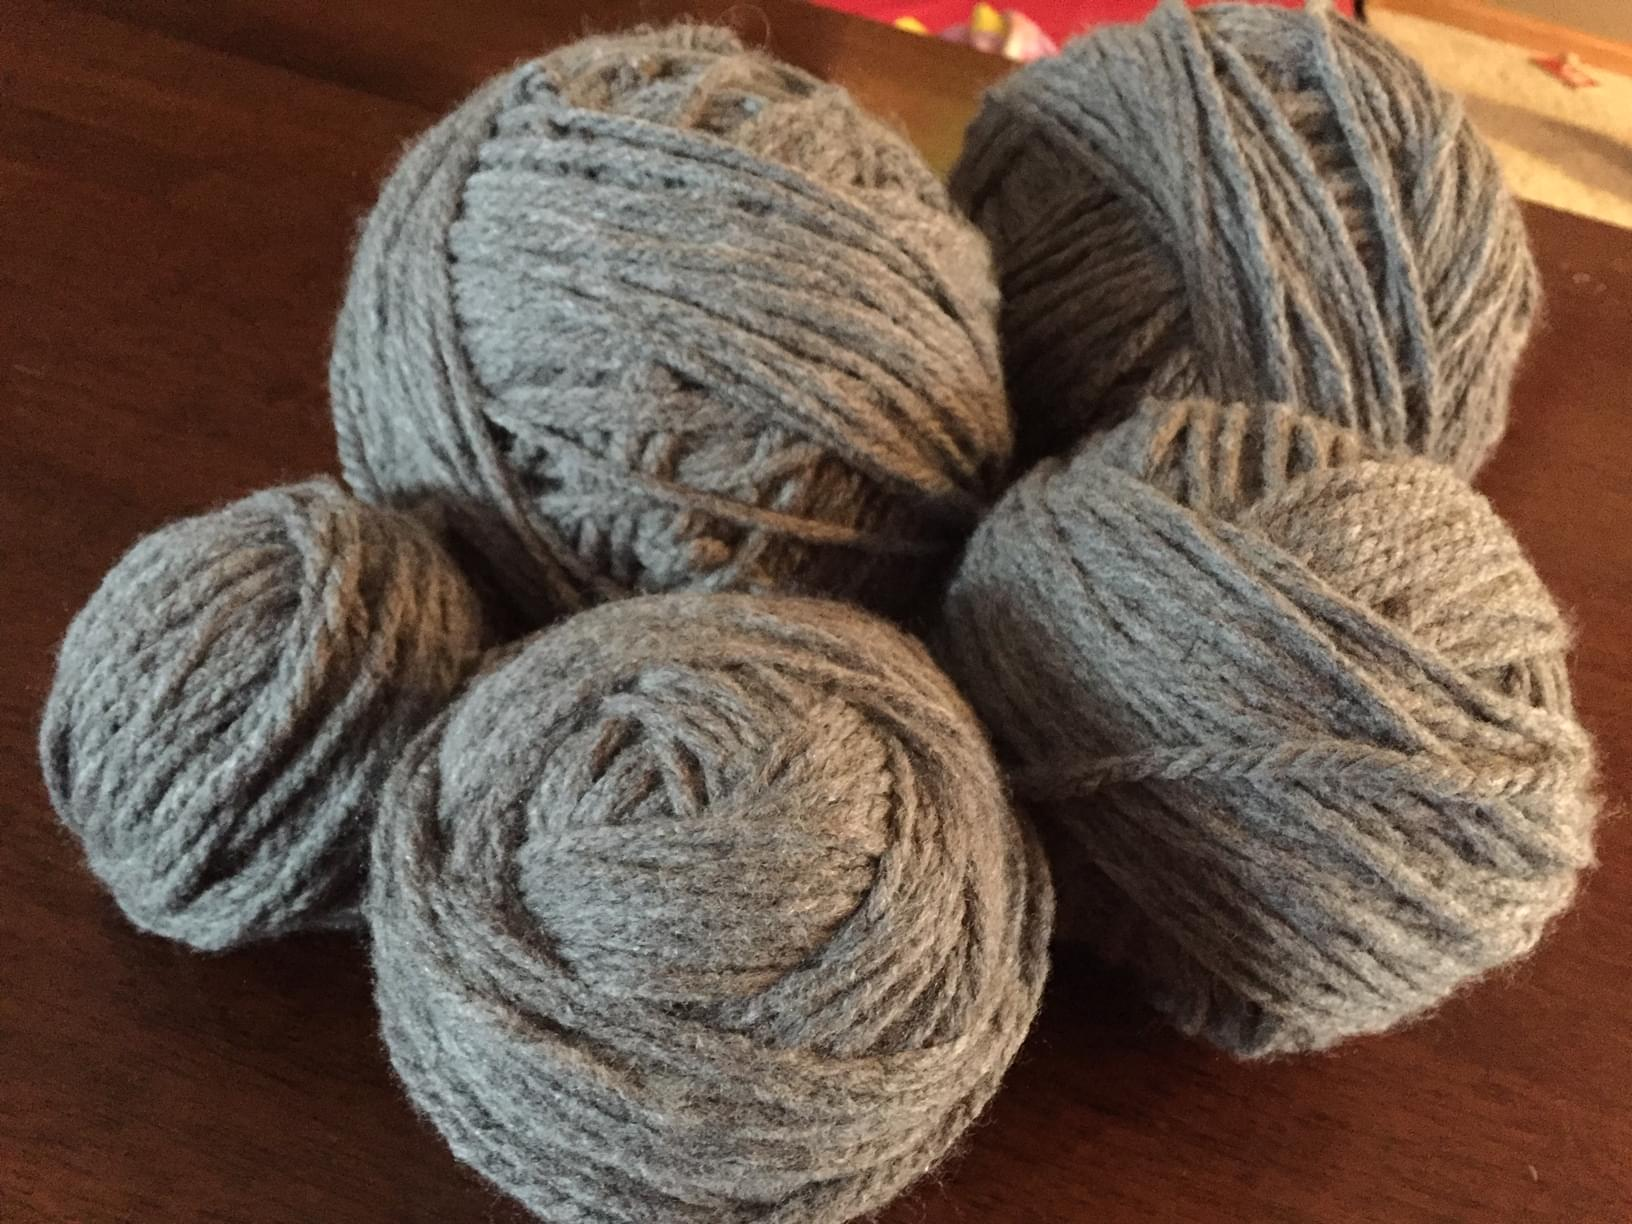 UPDATE on Lindsay's Crochet Sweater – Pictures